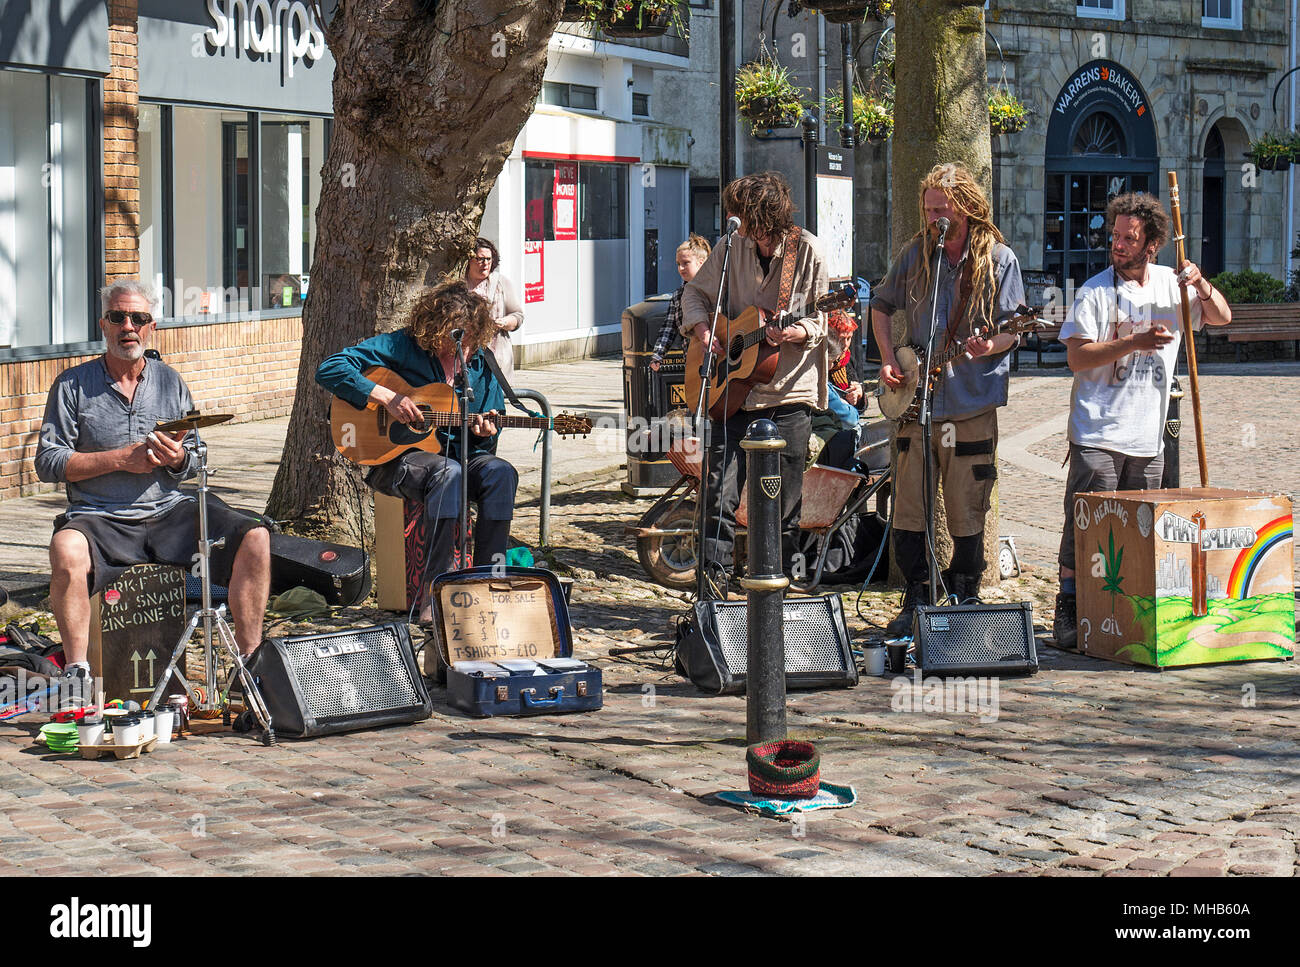 buskers performing in truro, cornwall, england, britain, uk. - Stock Image